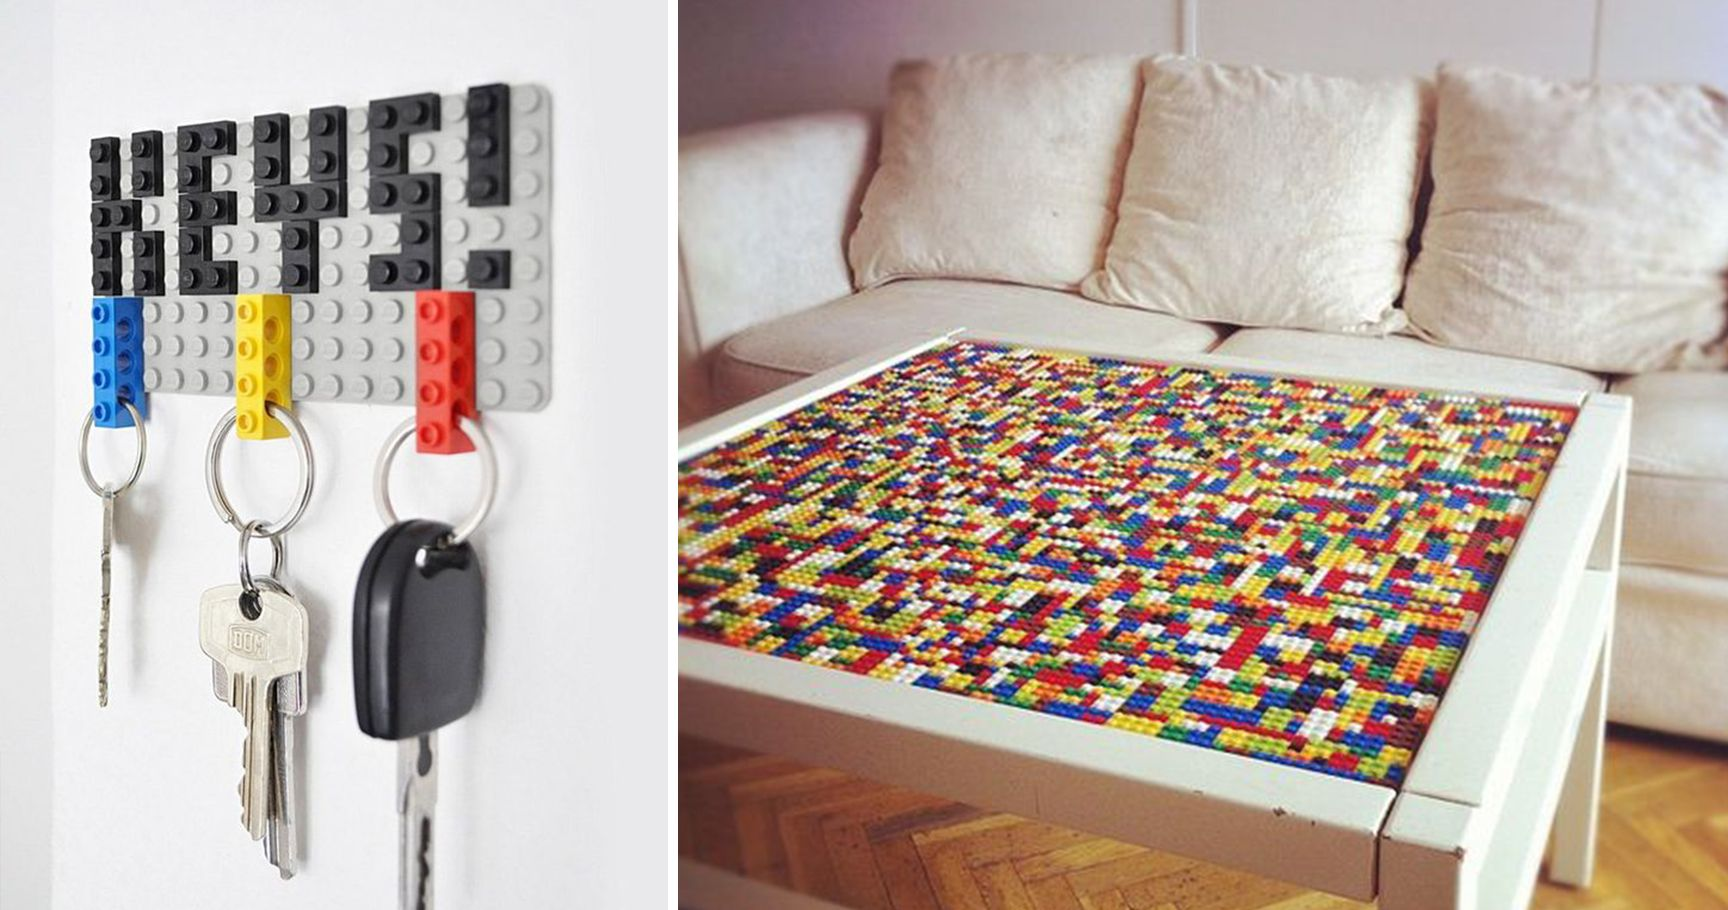 15 DIY Lego Projects You Have To Try